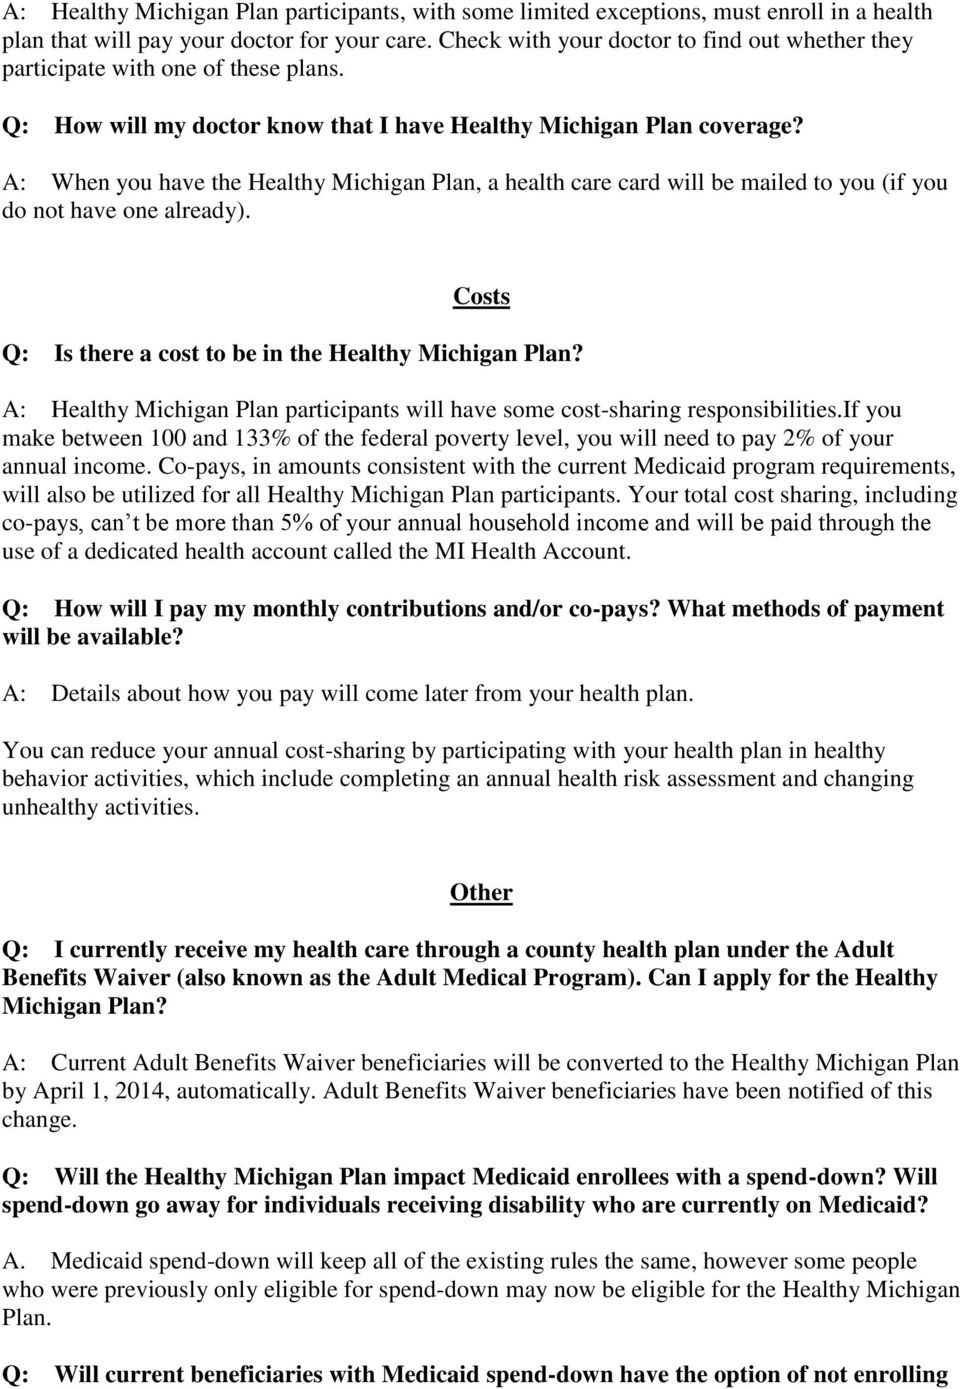 Healthy Michigan Plan Frequently Asked Questions - PDF